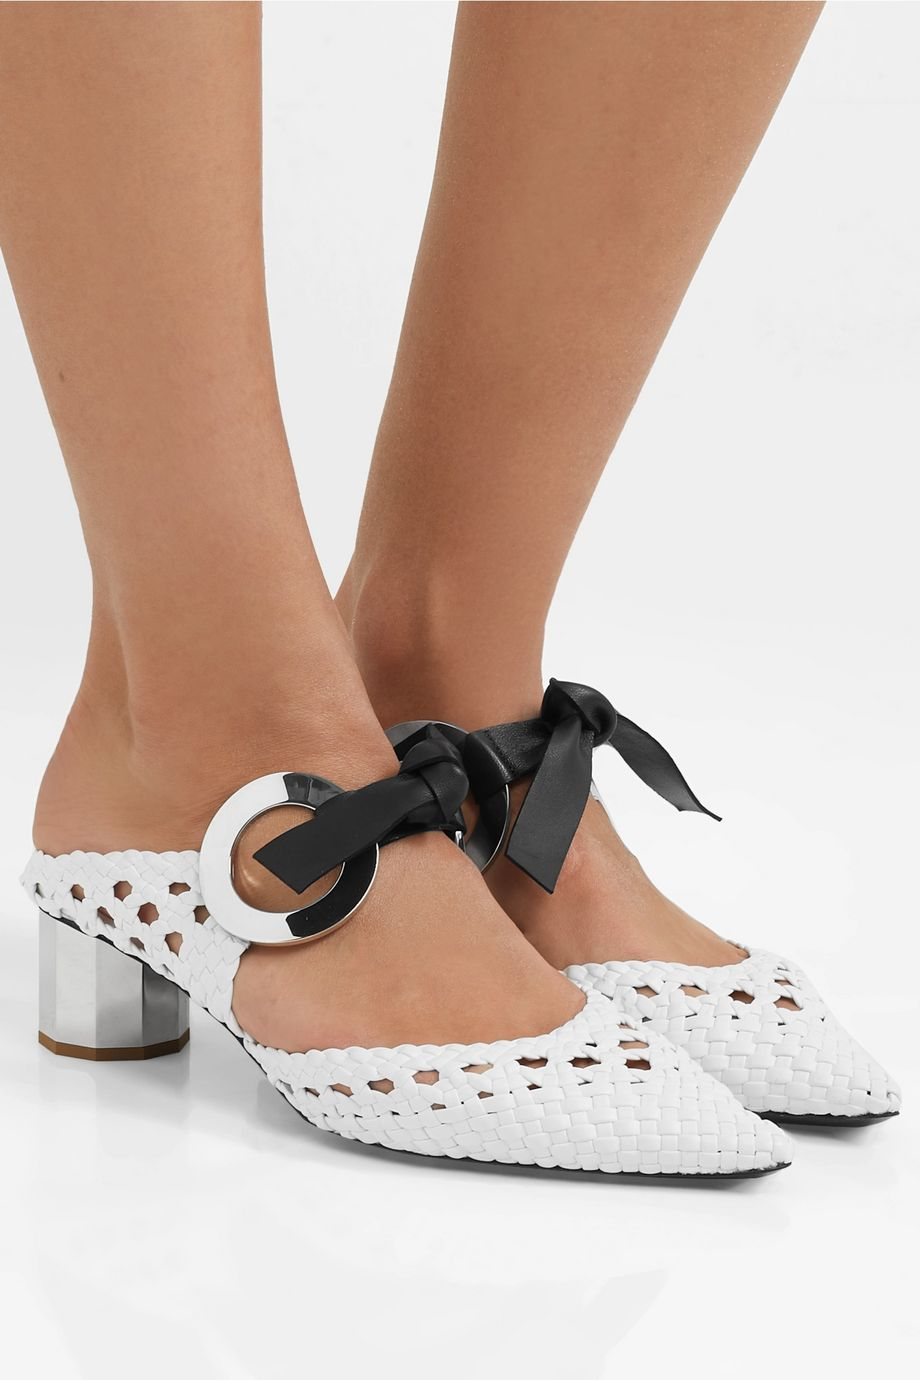 Proenza Schouler Eyelet-embellished woven leather mules